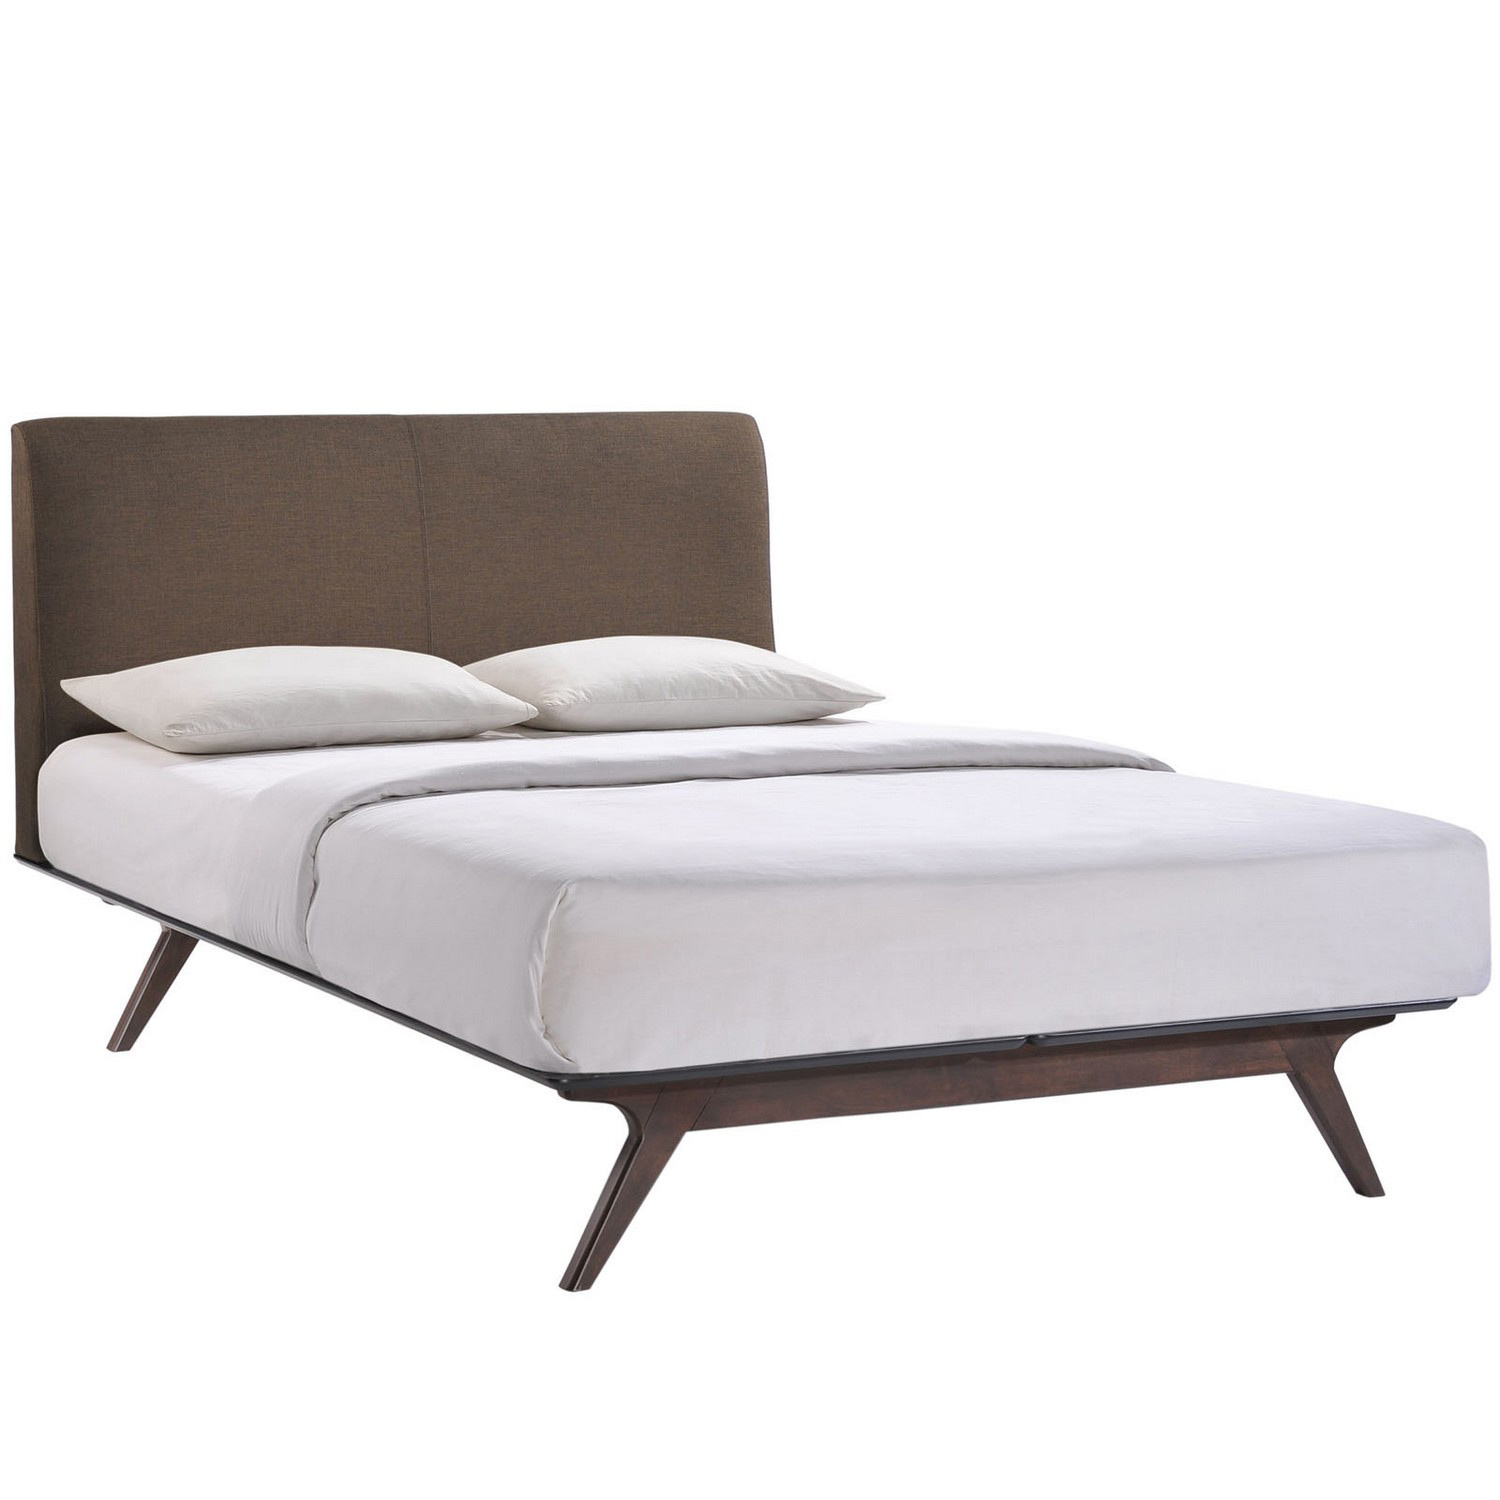 Modway Tracy Queen Bed - Cappuccino Brown